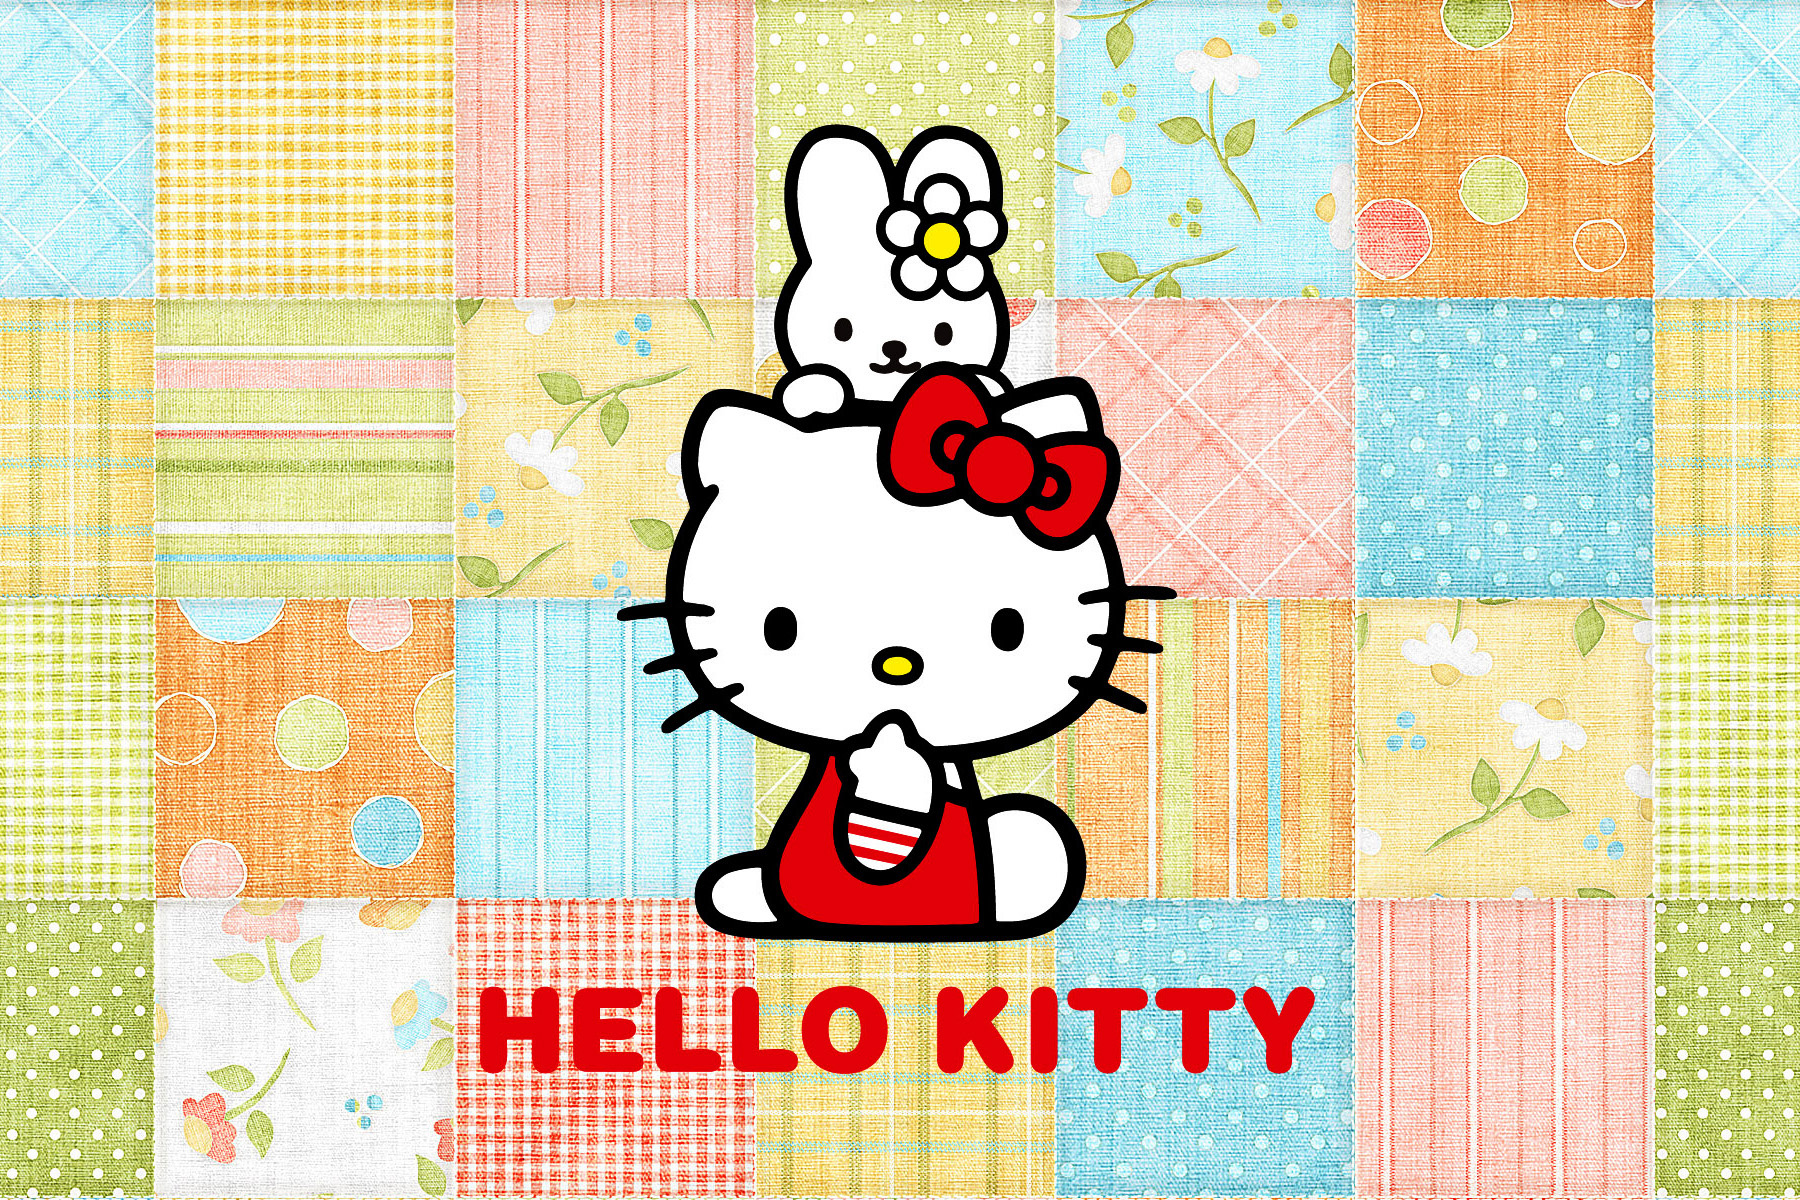 Cool Wallpaper Hello Kitty Blackberry - hello-kitty-cathy-quilt-background-6x44  2018_469891.jpg